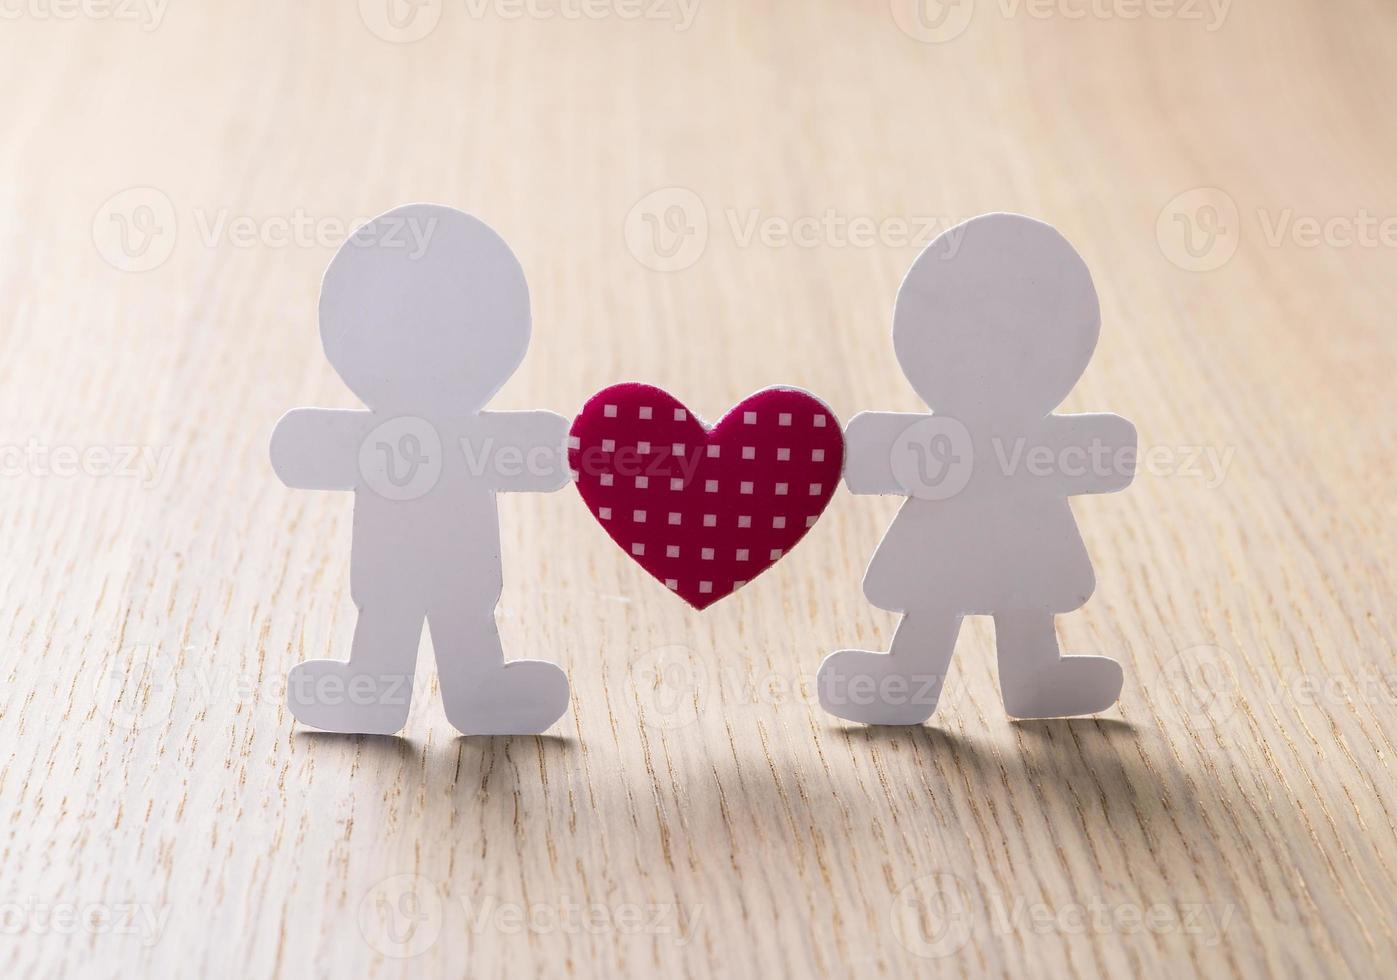 Silhouettes of men, women and heart cut out aper photo